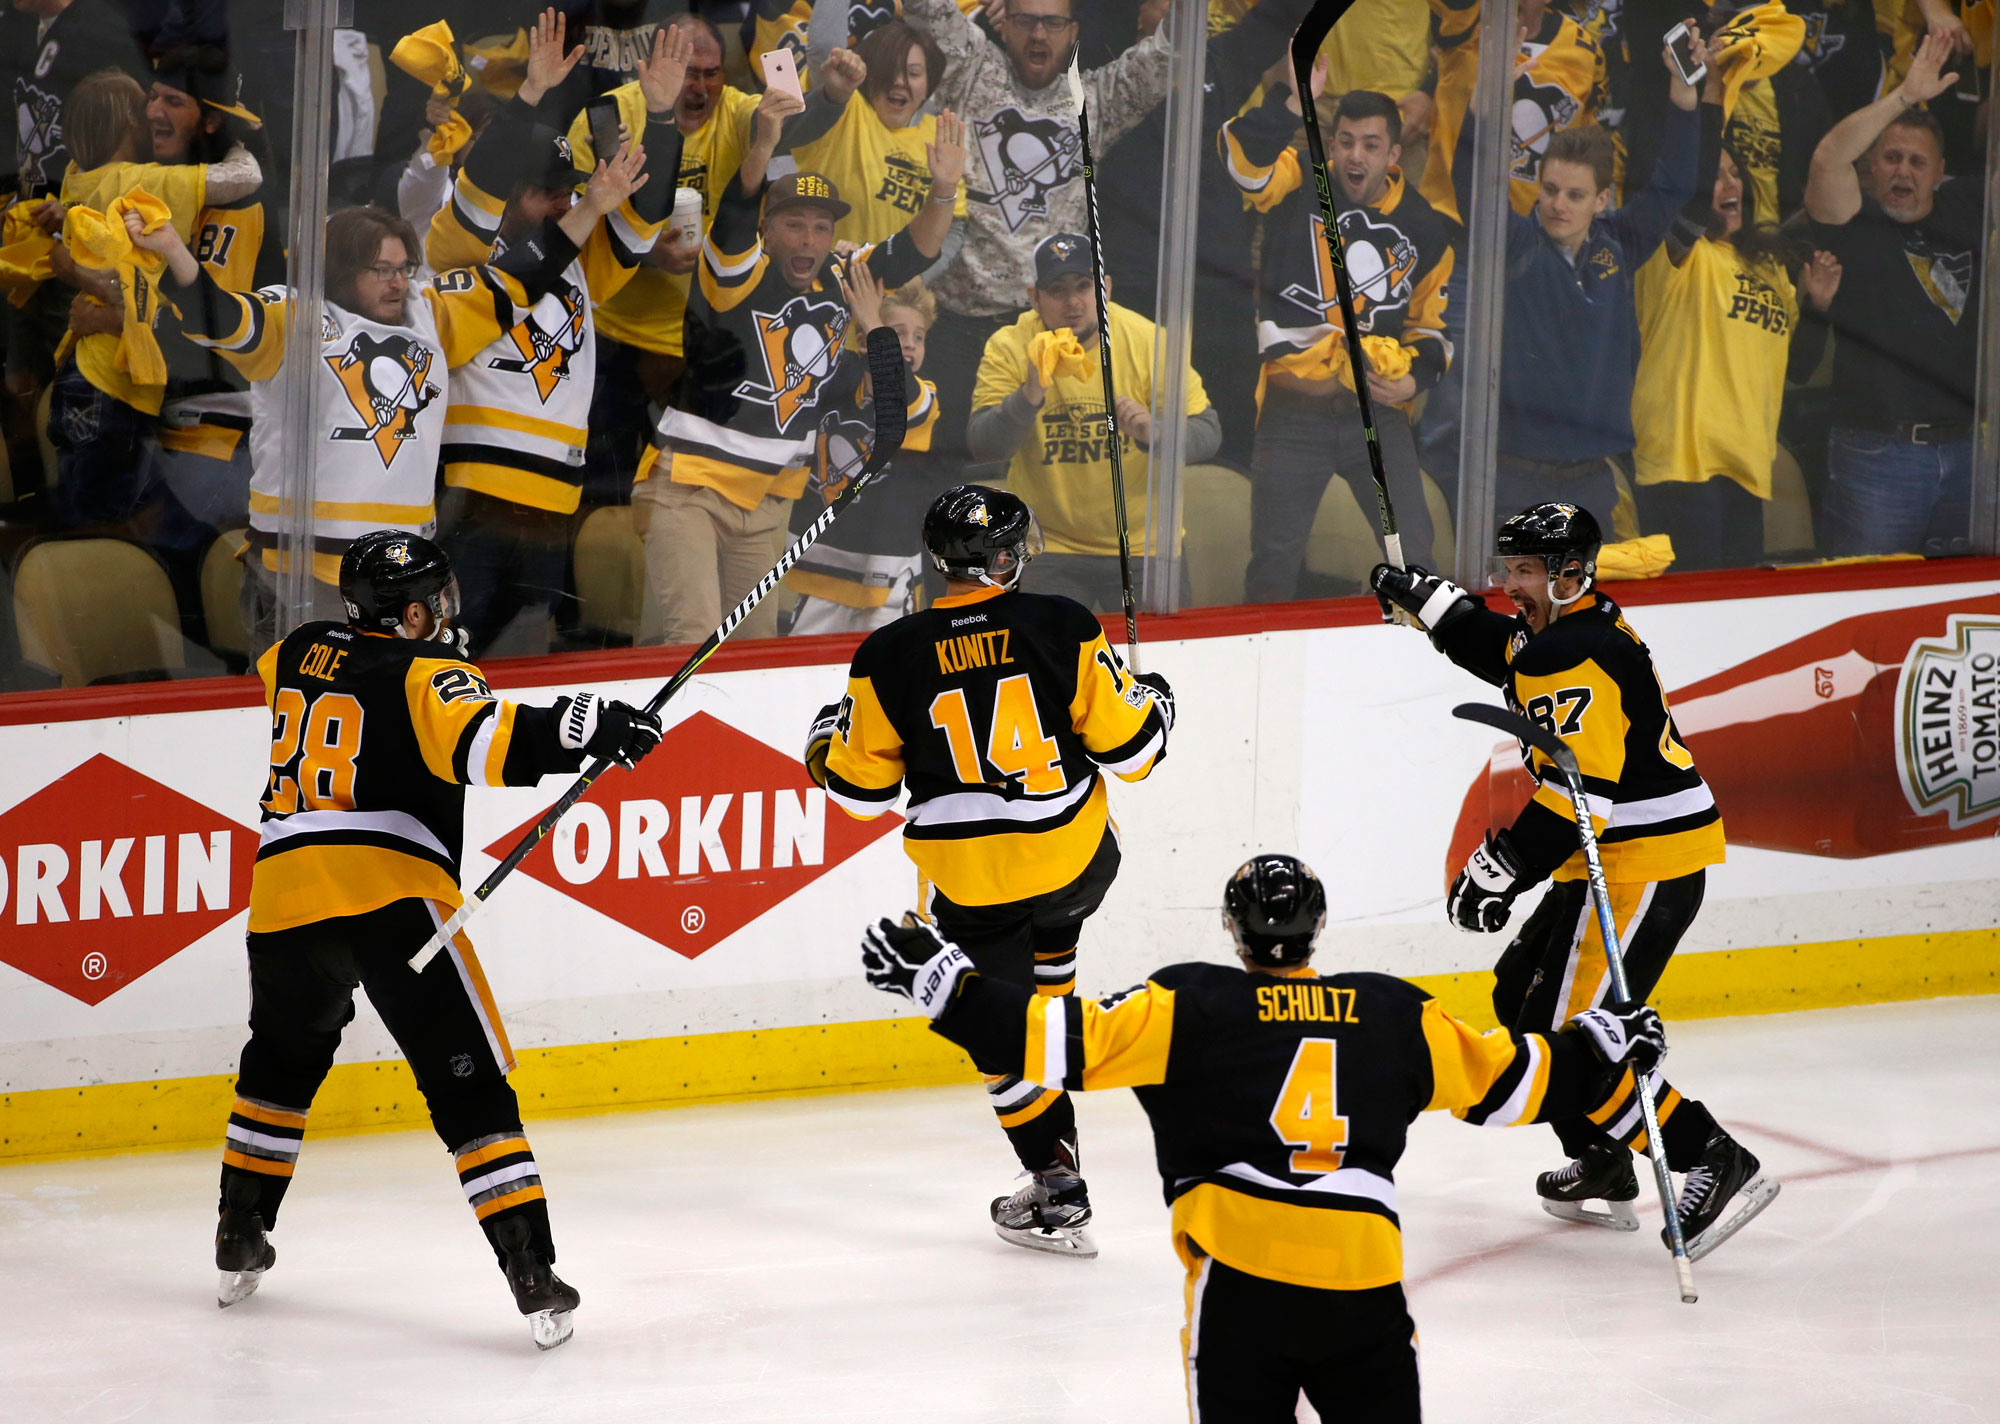 abbed9337 Penguins return to Stanley Cup final with Game 7 win over Senators